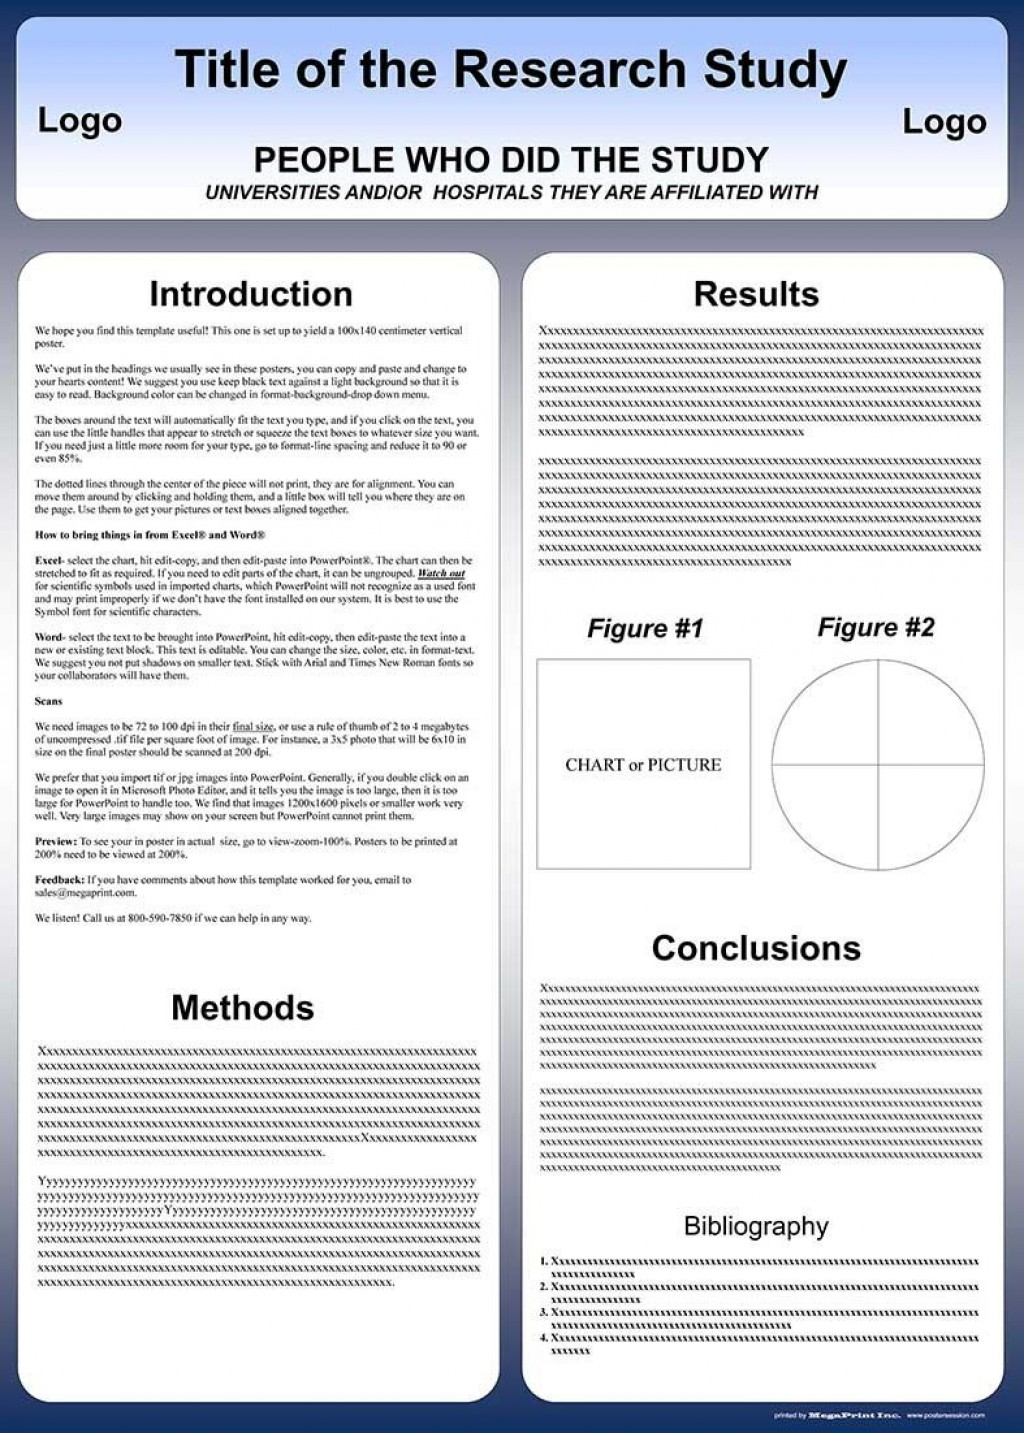 006 Shocking Scientific Poster Presentation Template Free Download Picture Large